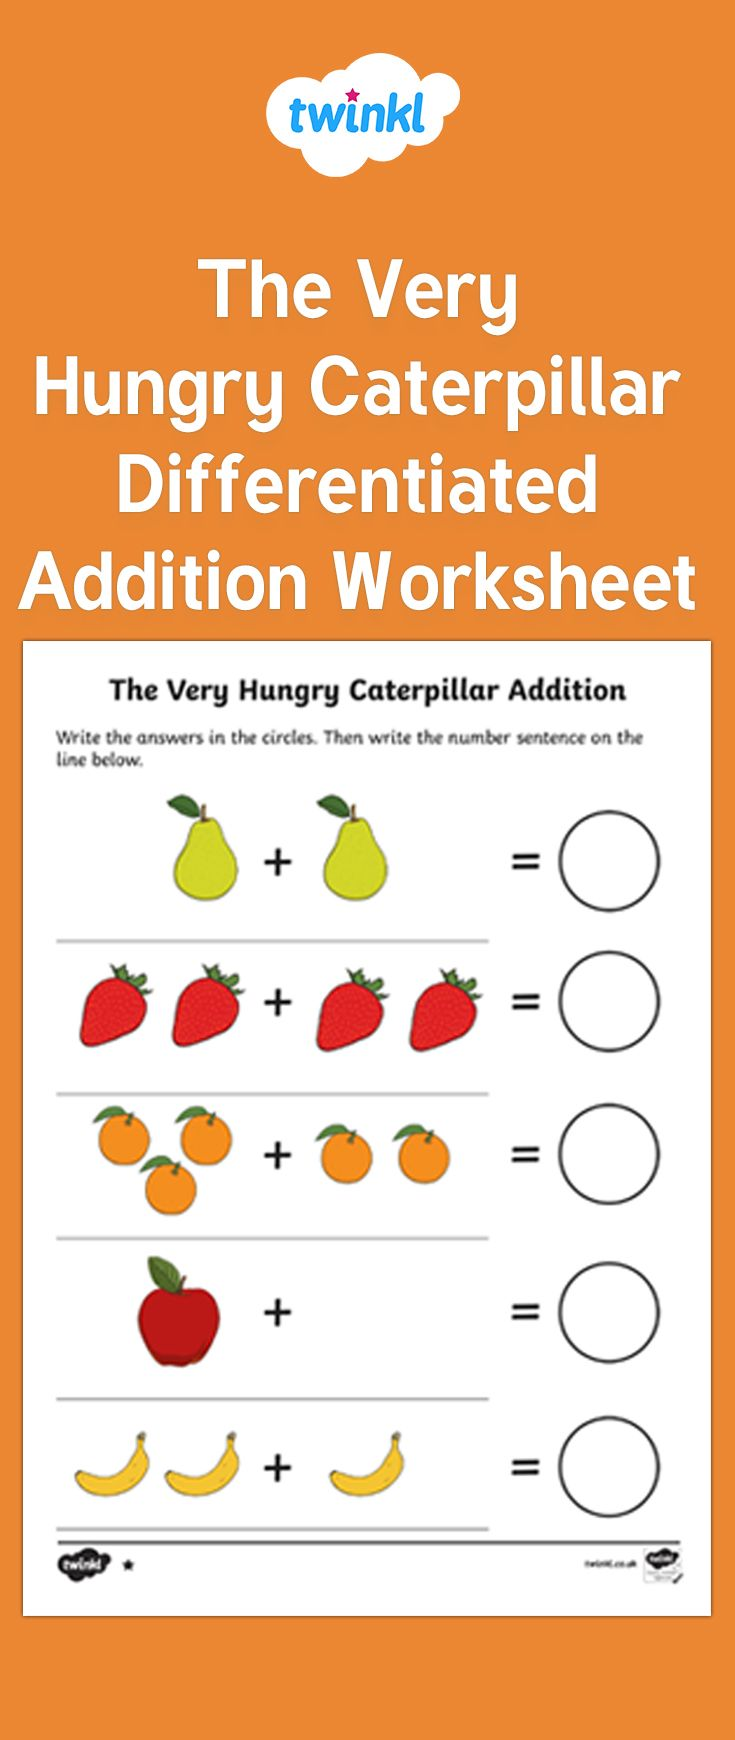 Differentiated Addition Activity To Support Teaching On The Very Hungry Caterpillar Very Hungry Caterpillar The Very Hungry Caterpillar Activities The Very Hungry Caterpillar Addition to worksheets twinkl